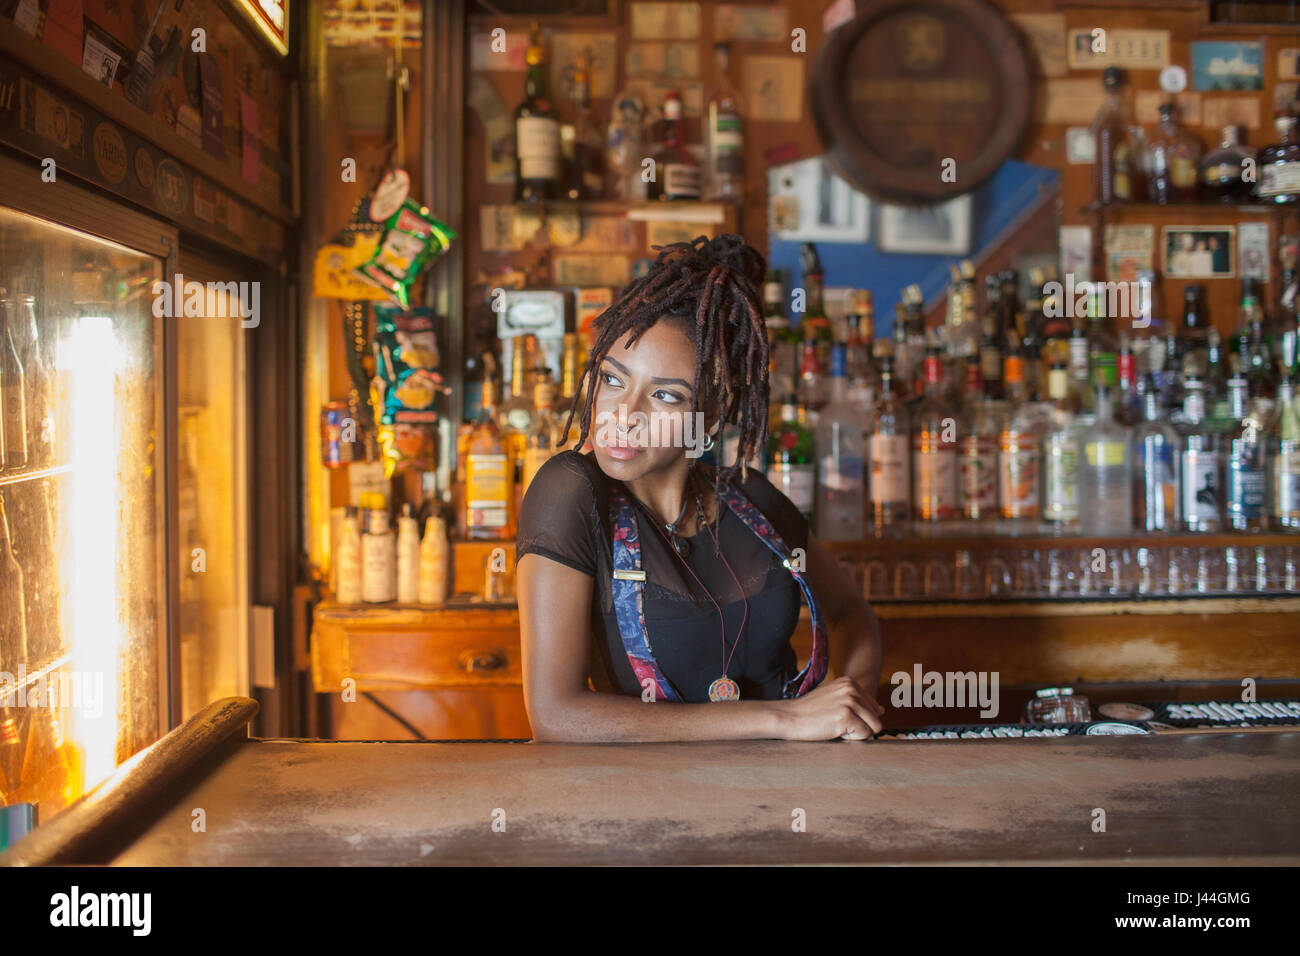 A young woman at a bar. - Stock Image